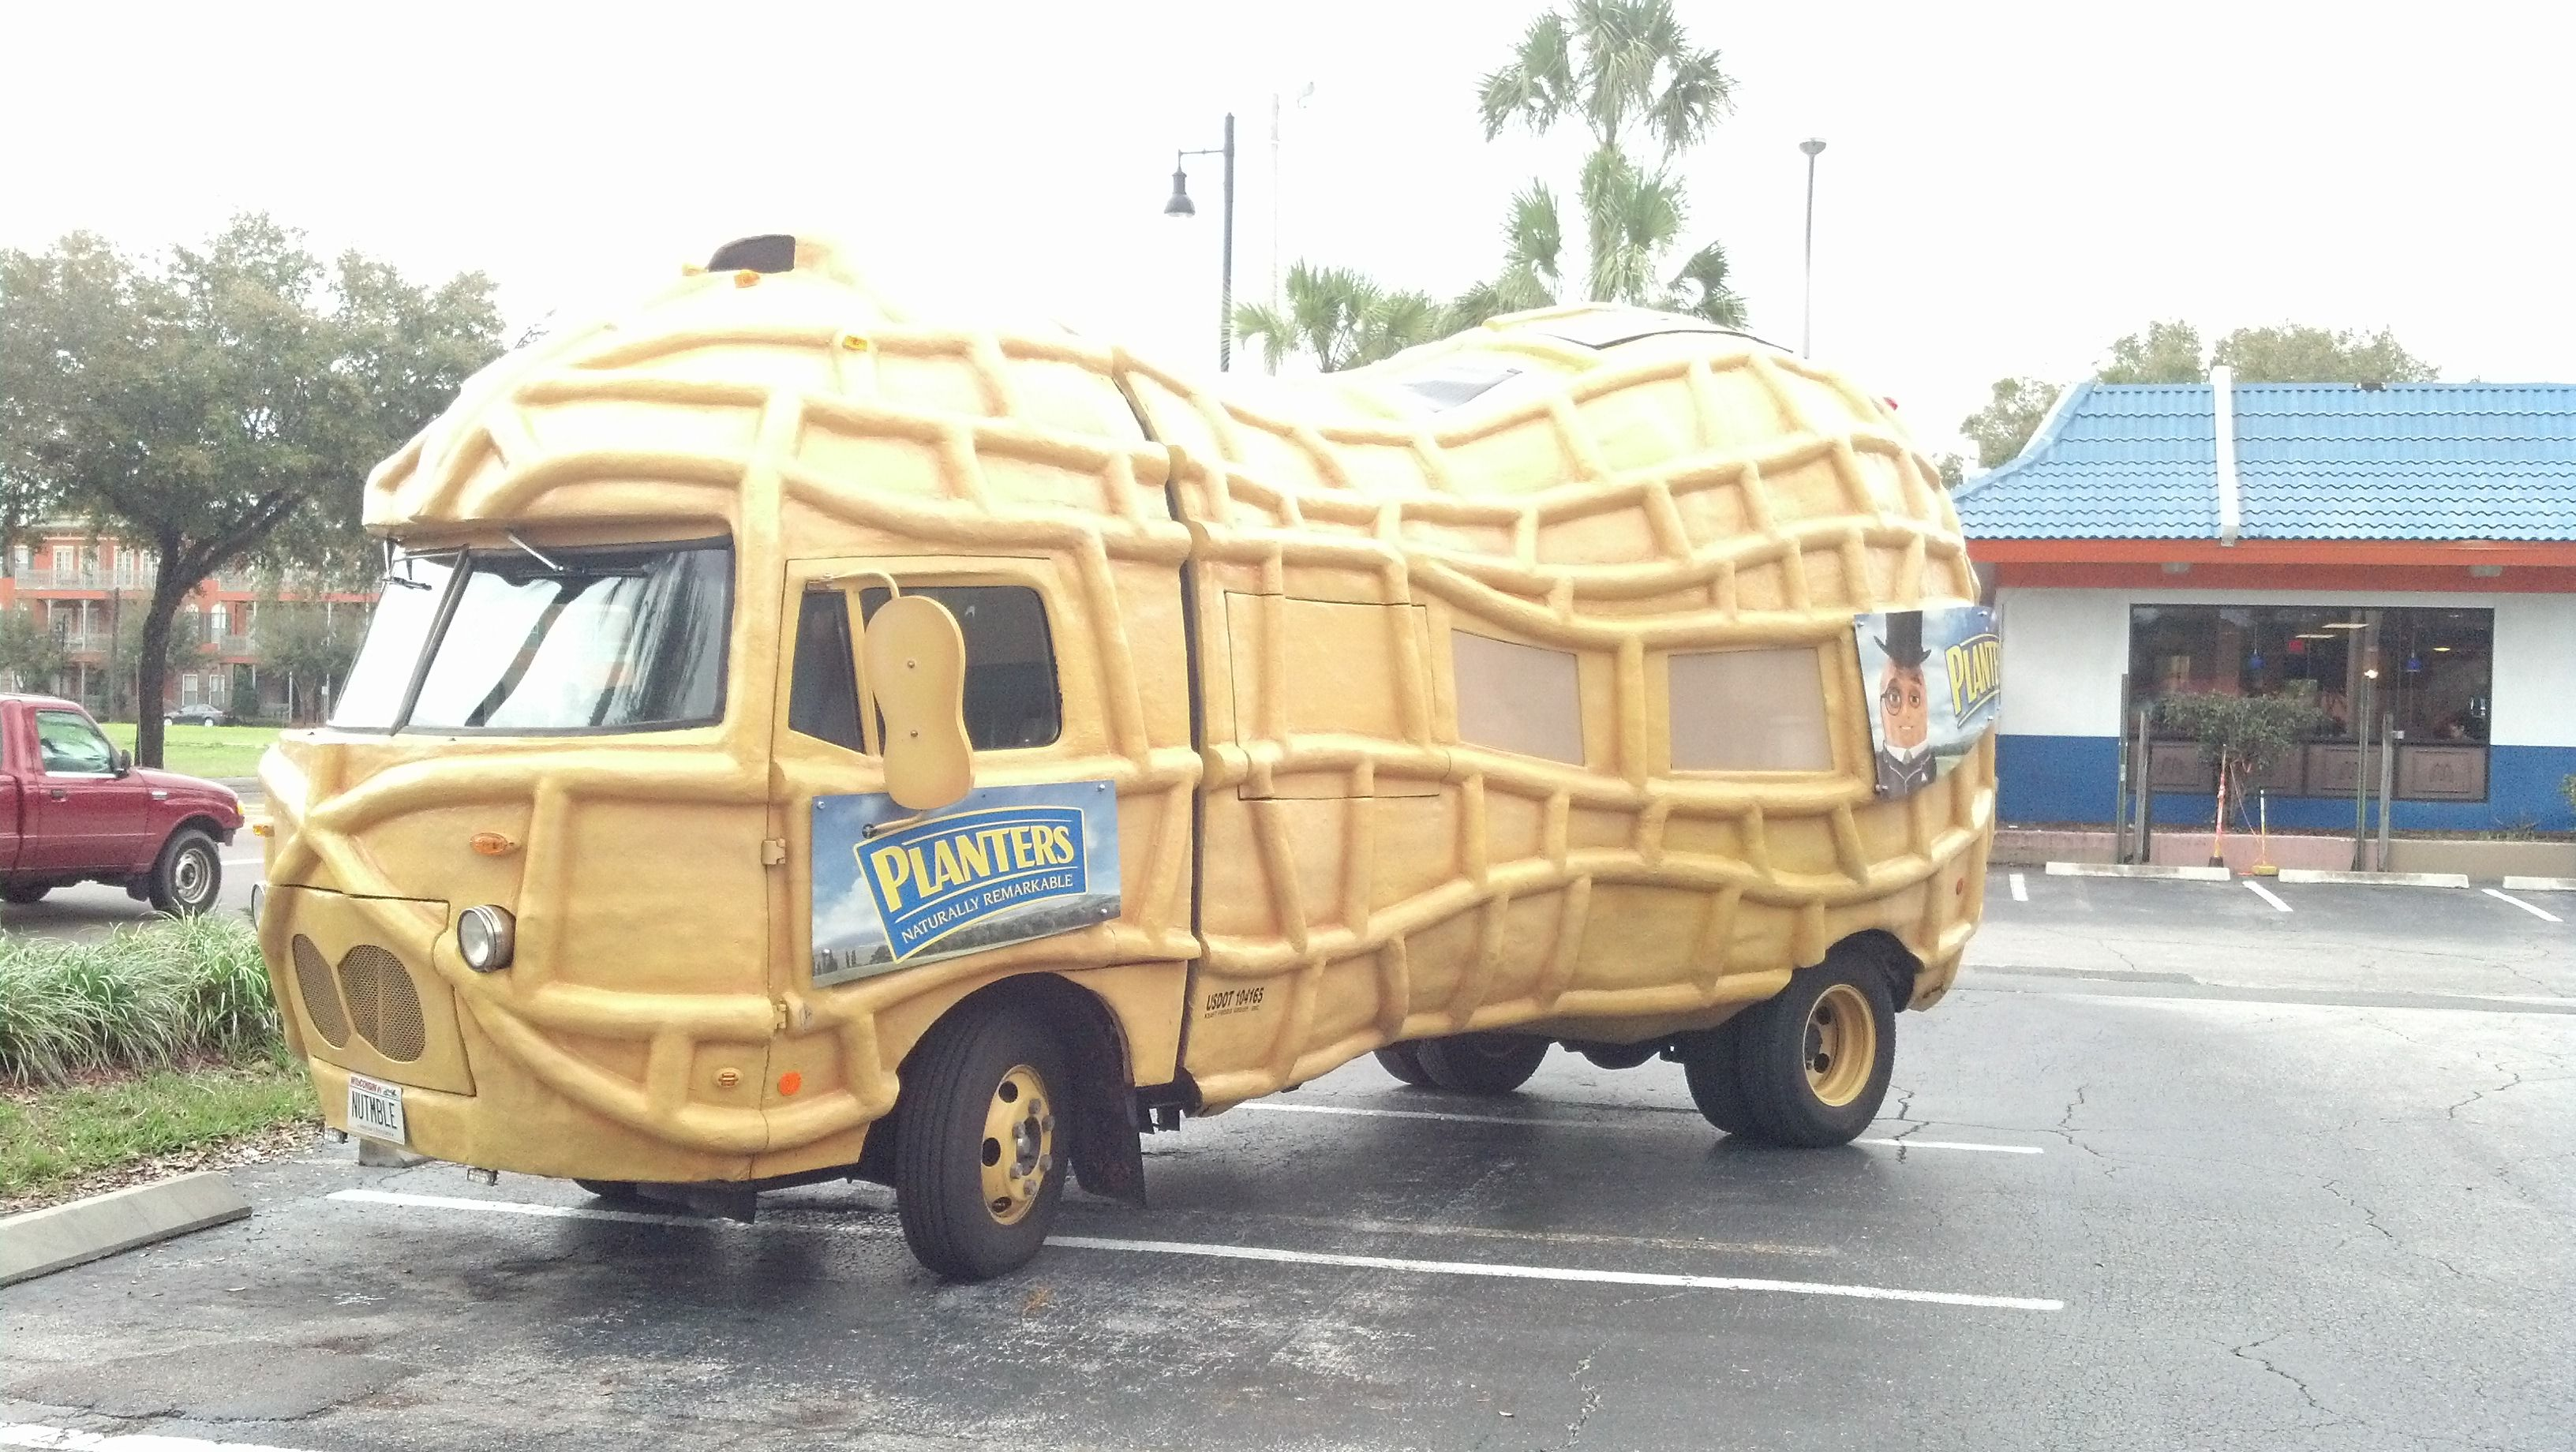 the planters peanut mobile while i was in gainesville fl